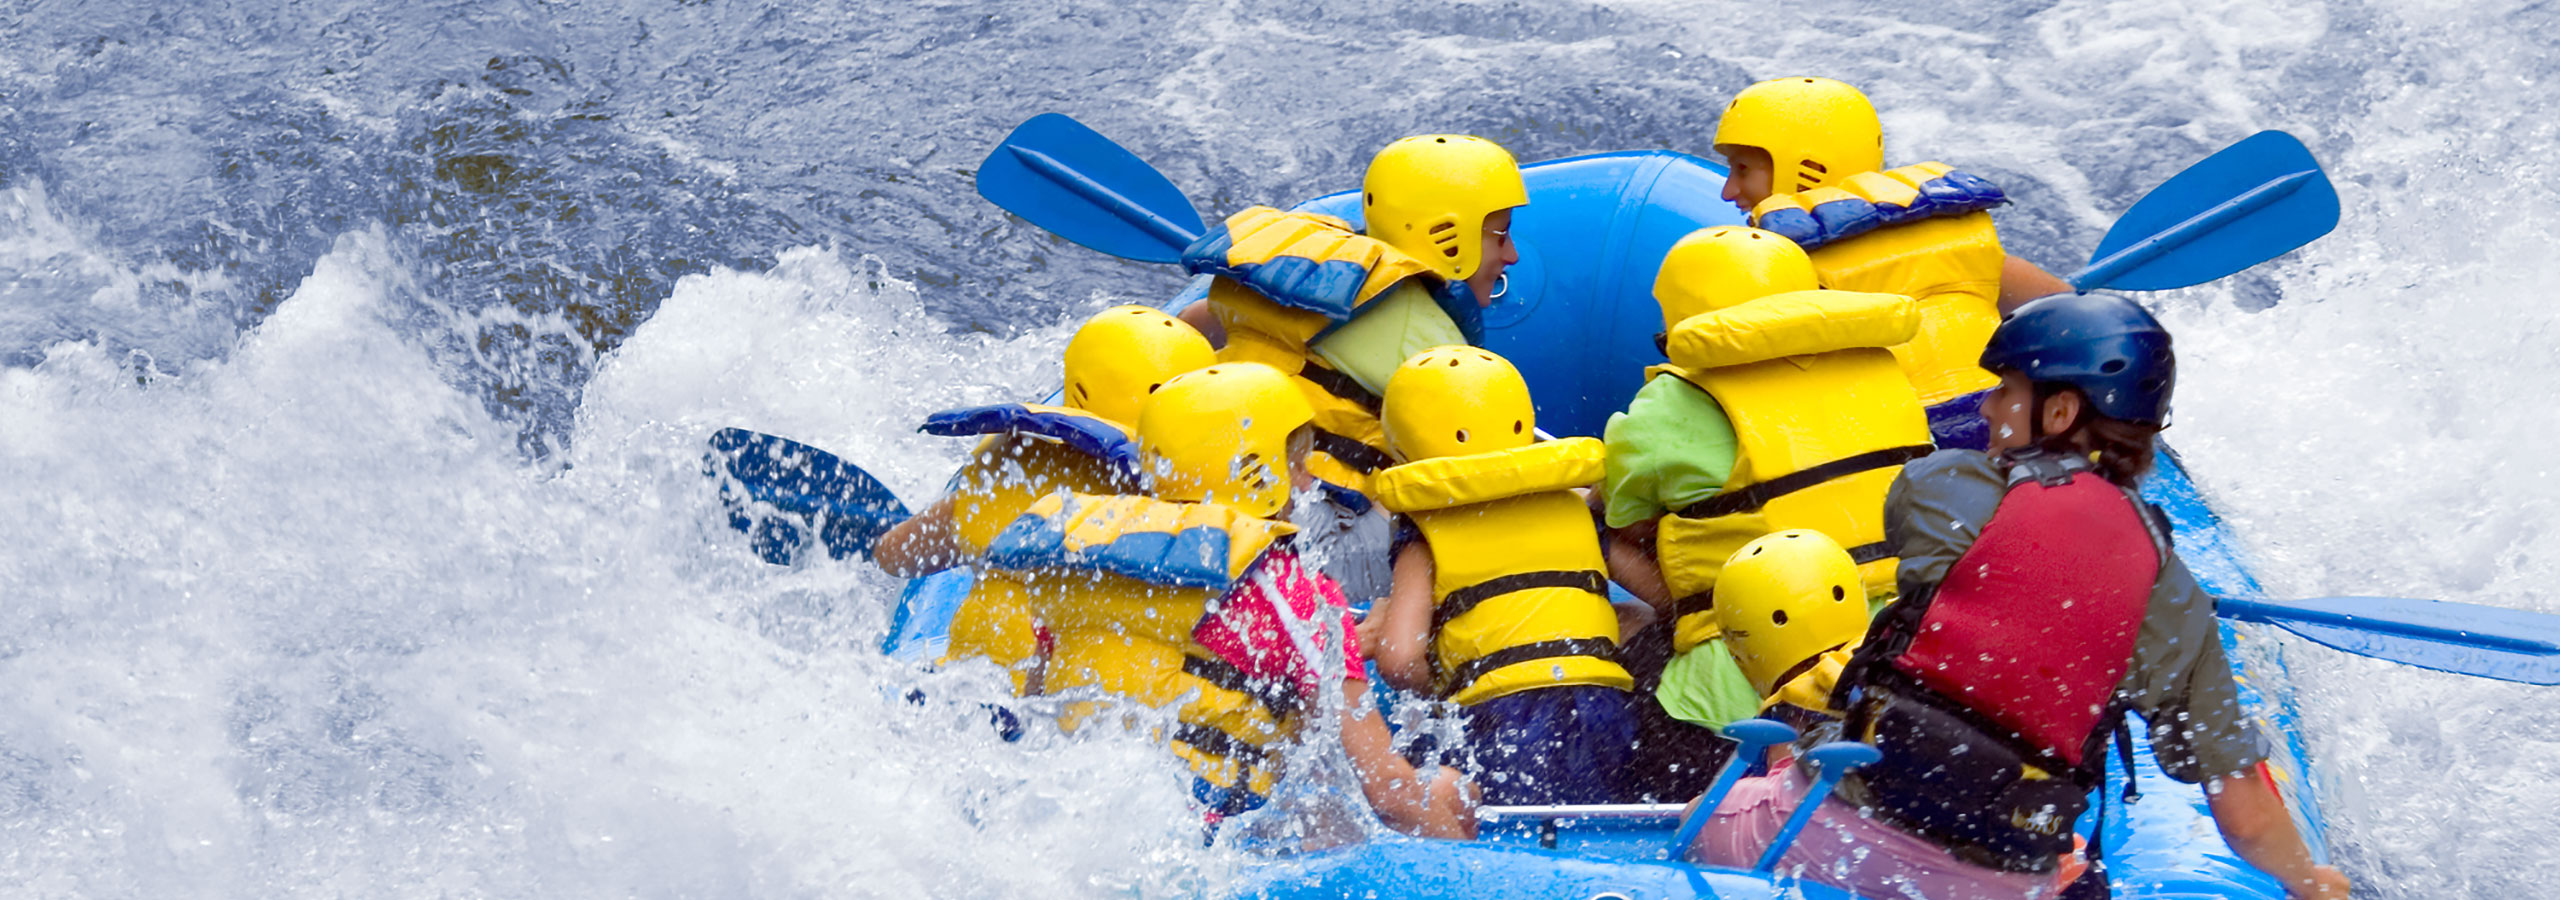 Manage-Risk-Whitewater-Rafting